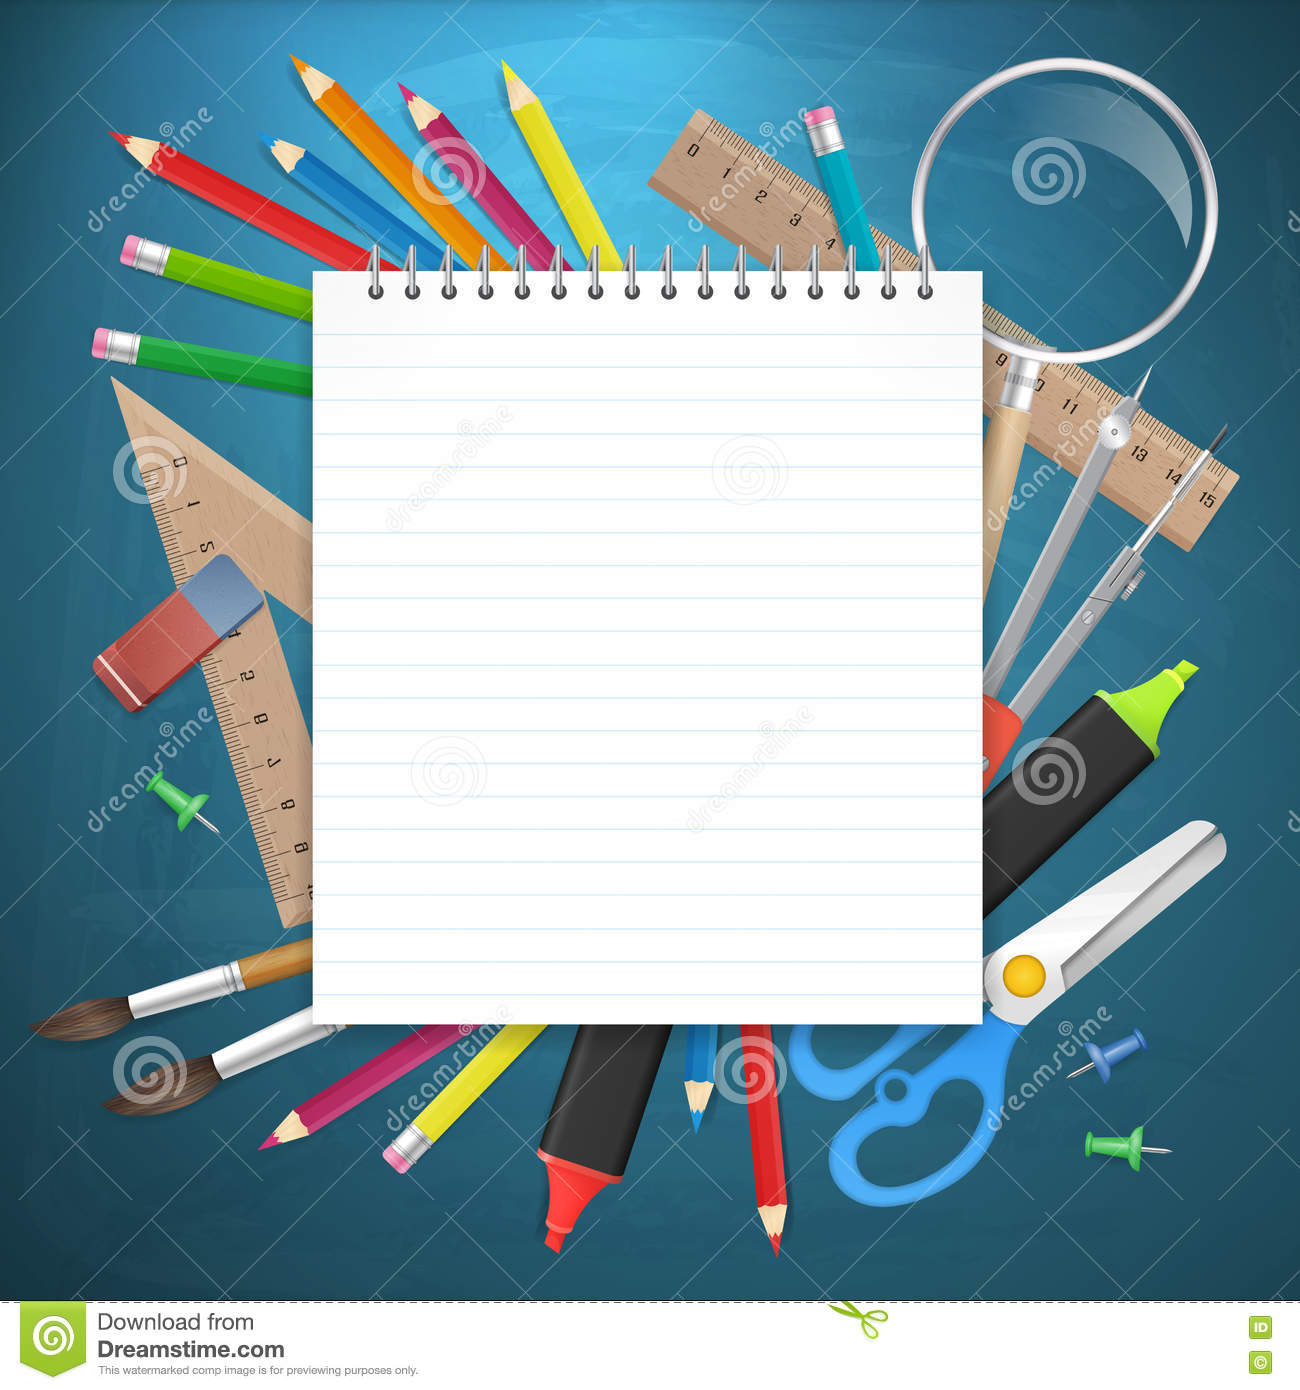 School Supplies Business Background With Empty Notebook Stock Vector Illustration Of Life Element 75526695